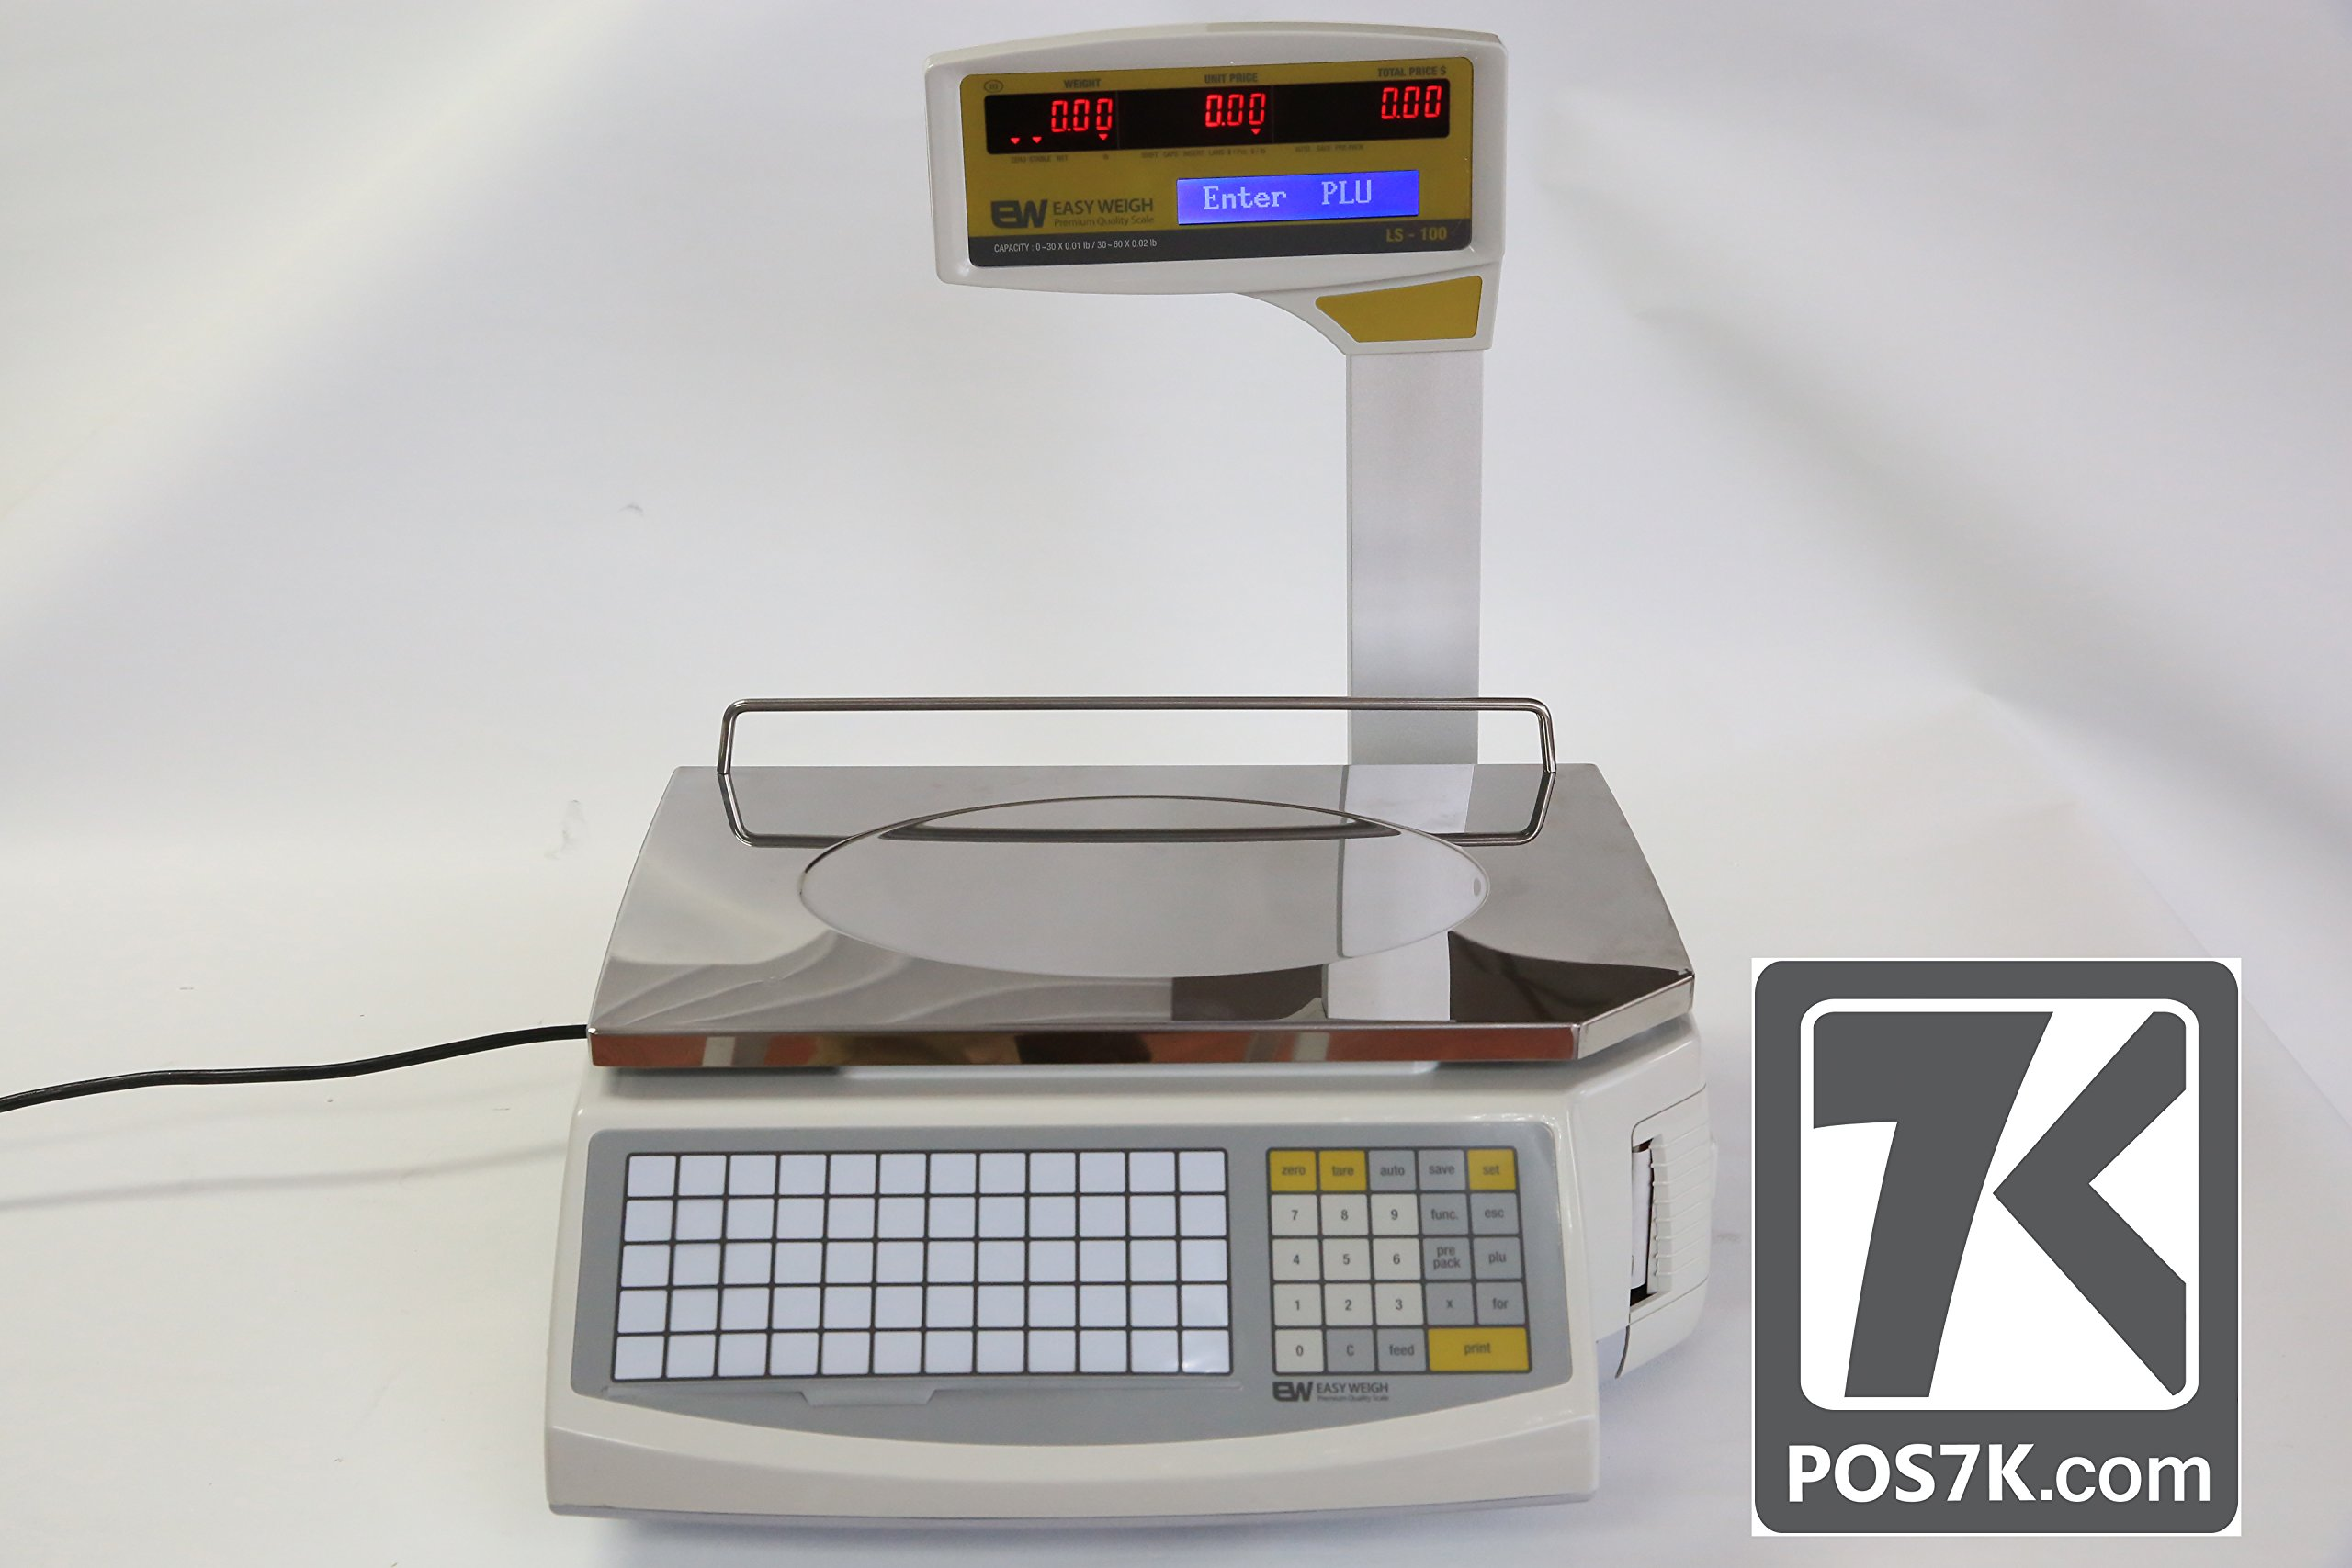 New Easy Weigh LS-100N Fast Reliable Price Computing Printing Scale by Easy Weigh